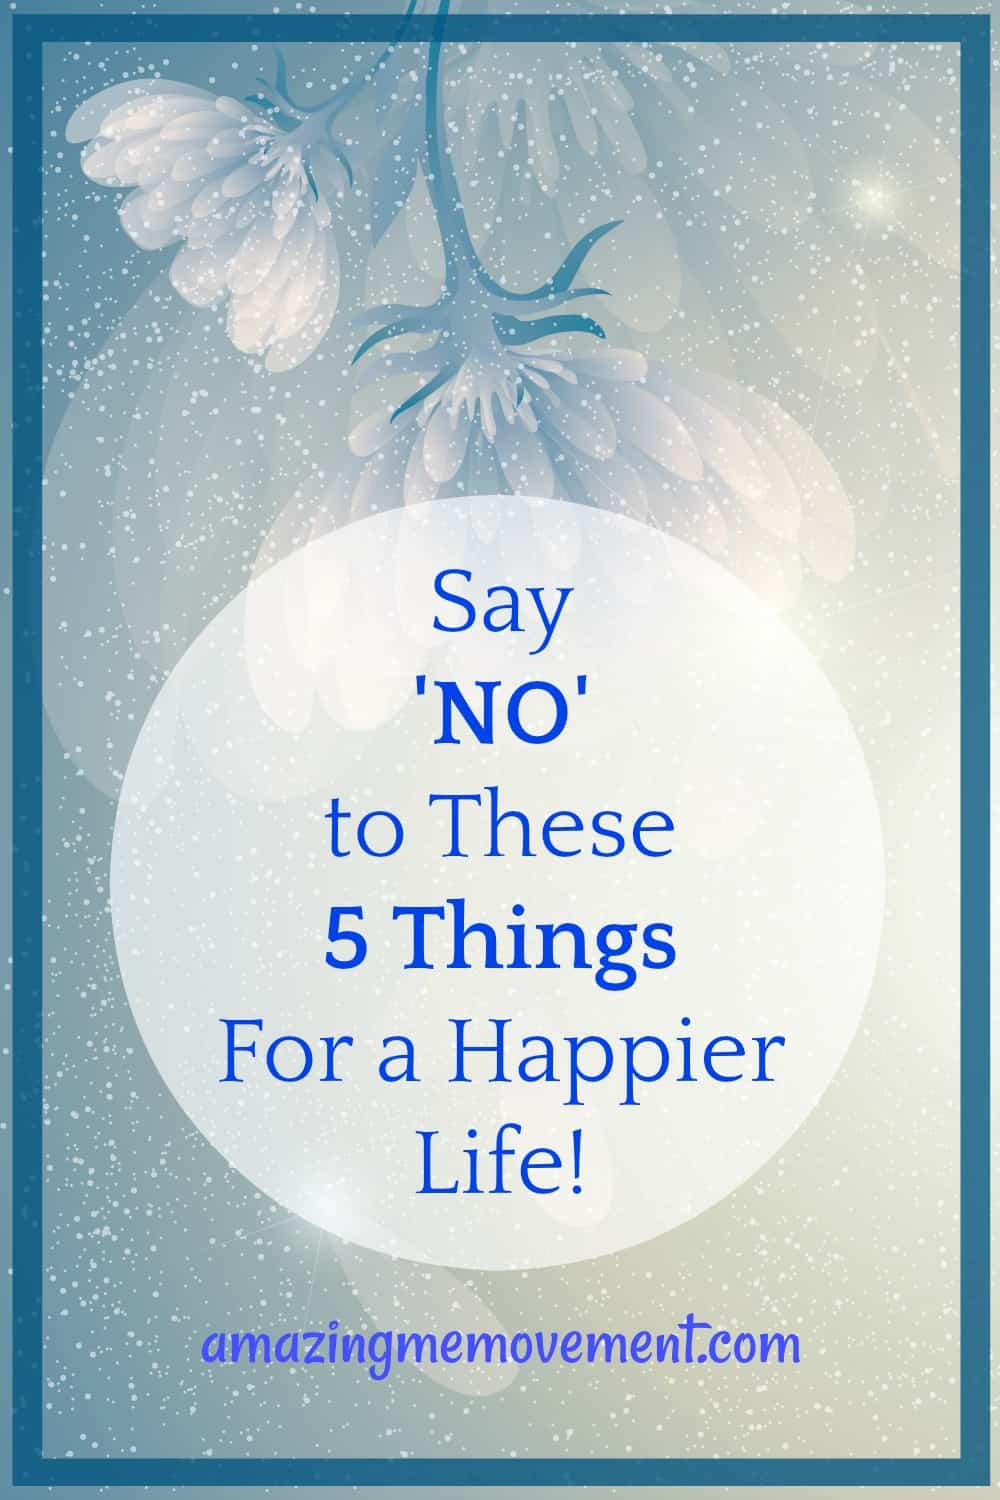 Say no to these 5 things for a happier life